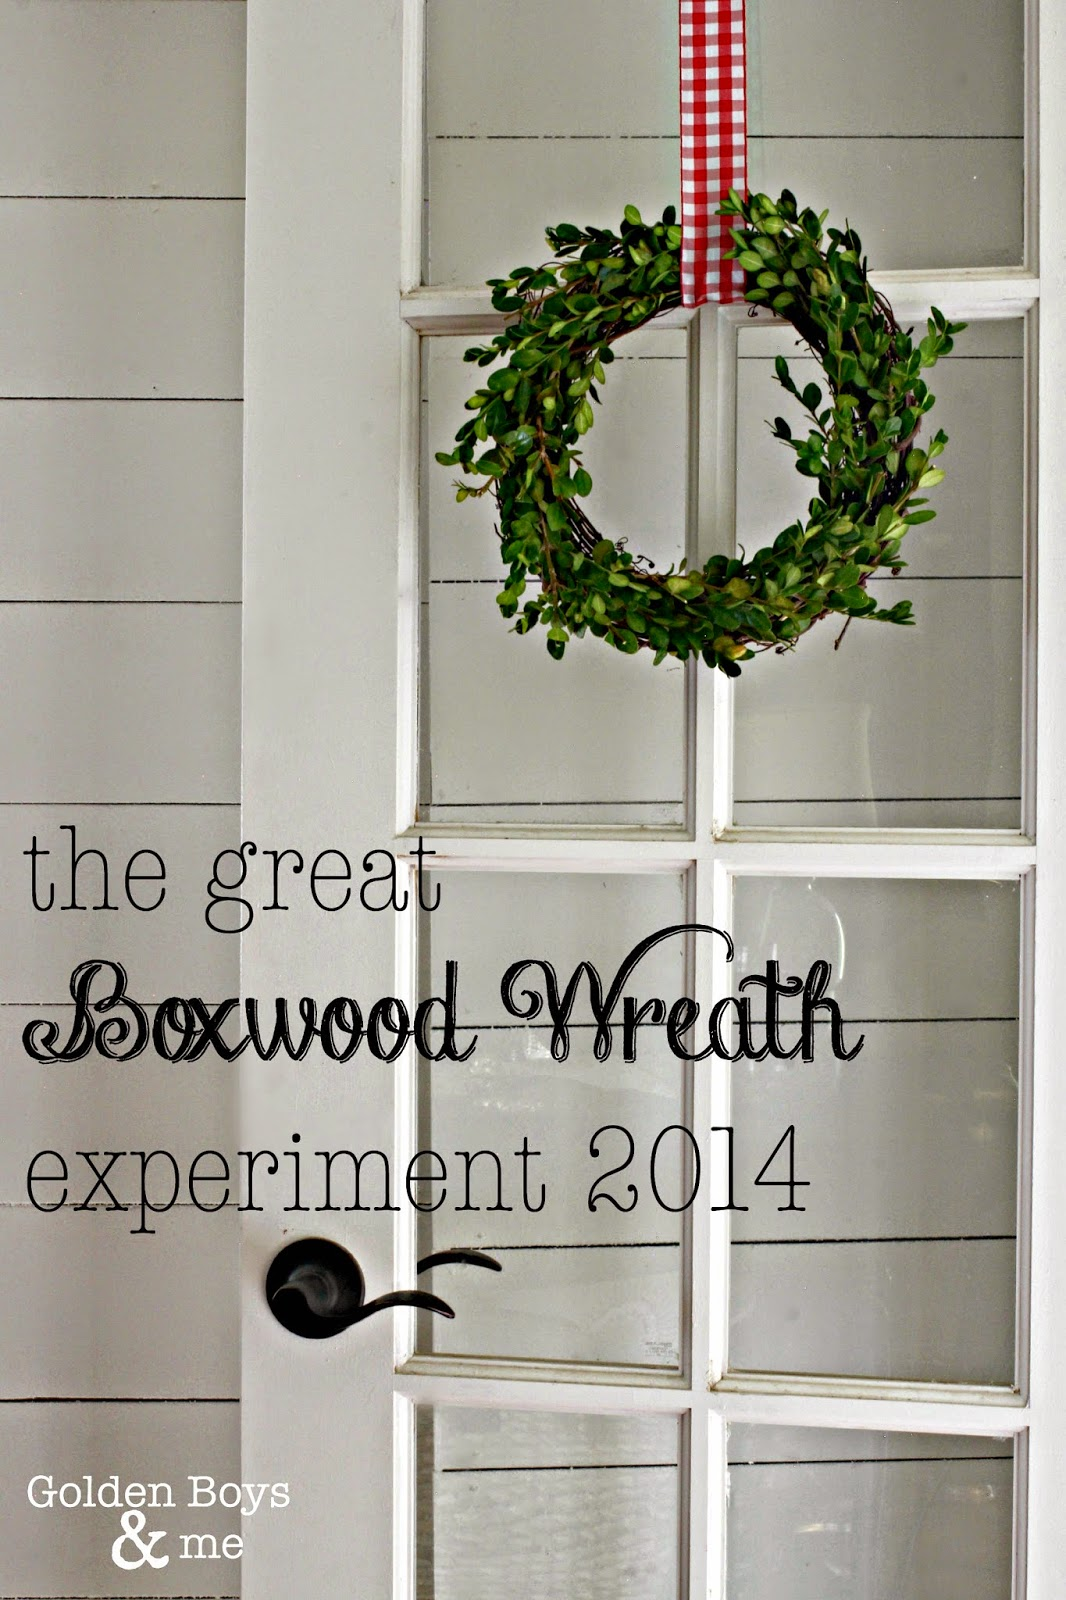 Boxwood wreath made with clippings from a boxwood shrub-www.goldenboysandme.com